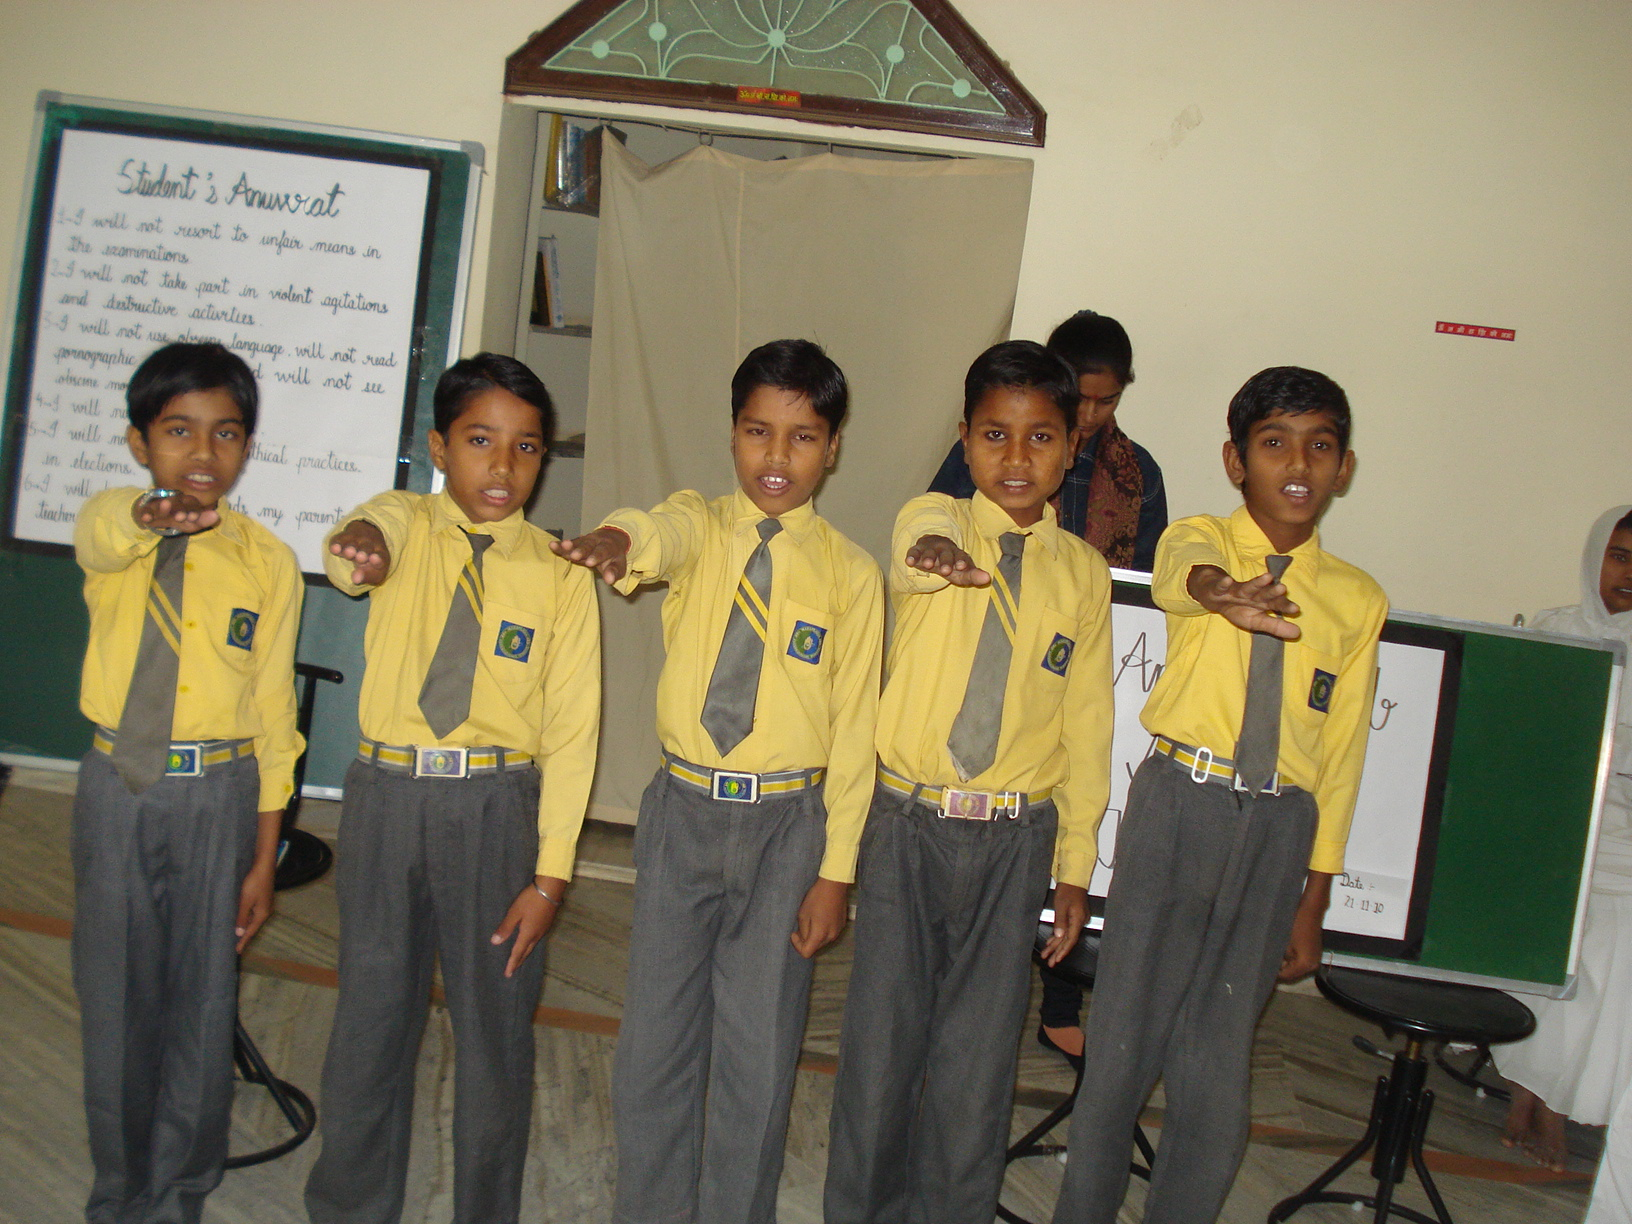 http://www.herenow4u.net/fileadmin/v3media/pics/organisations/Mahapragya_International_School/Anuvrat_Pledge_2.jpg